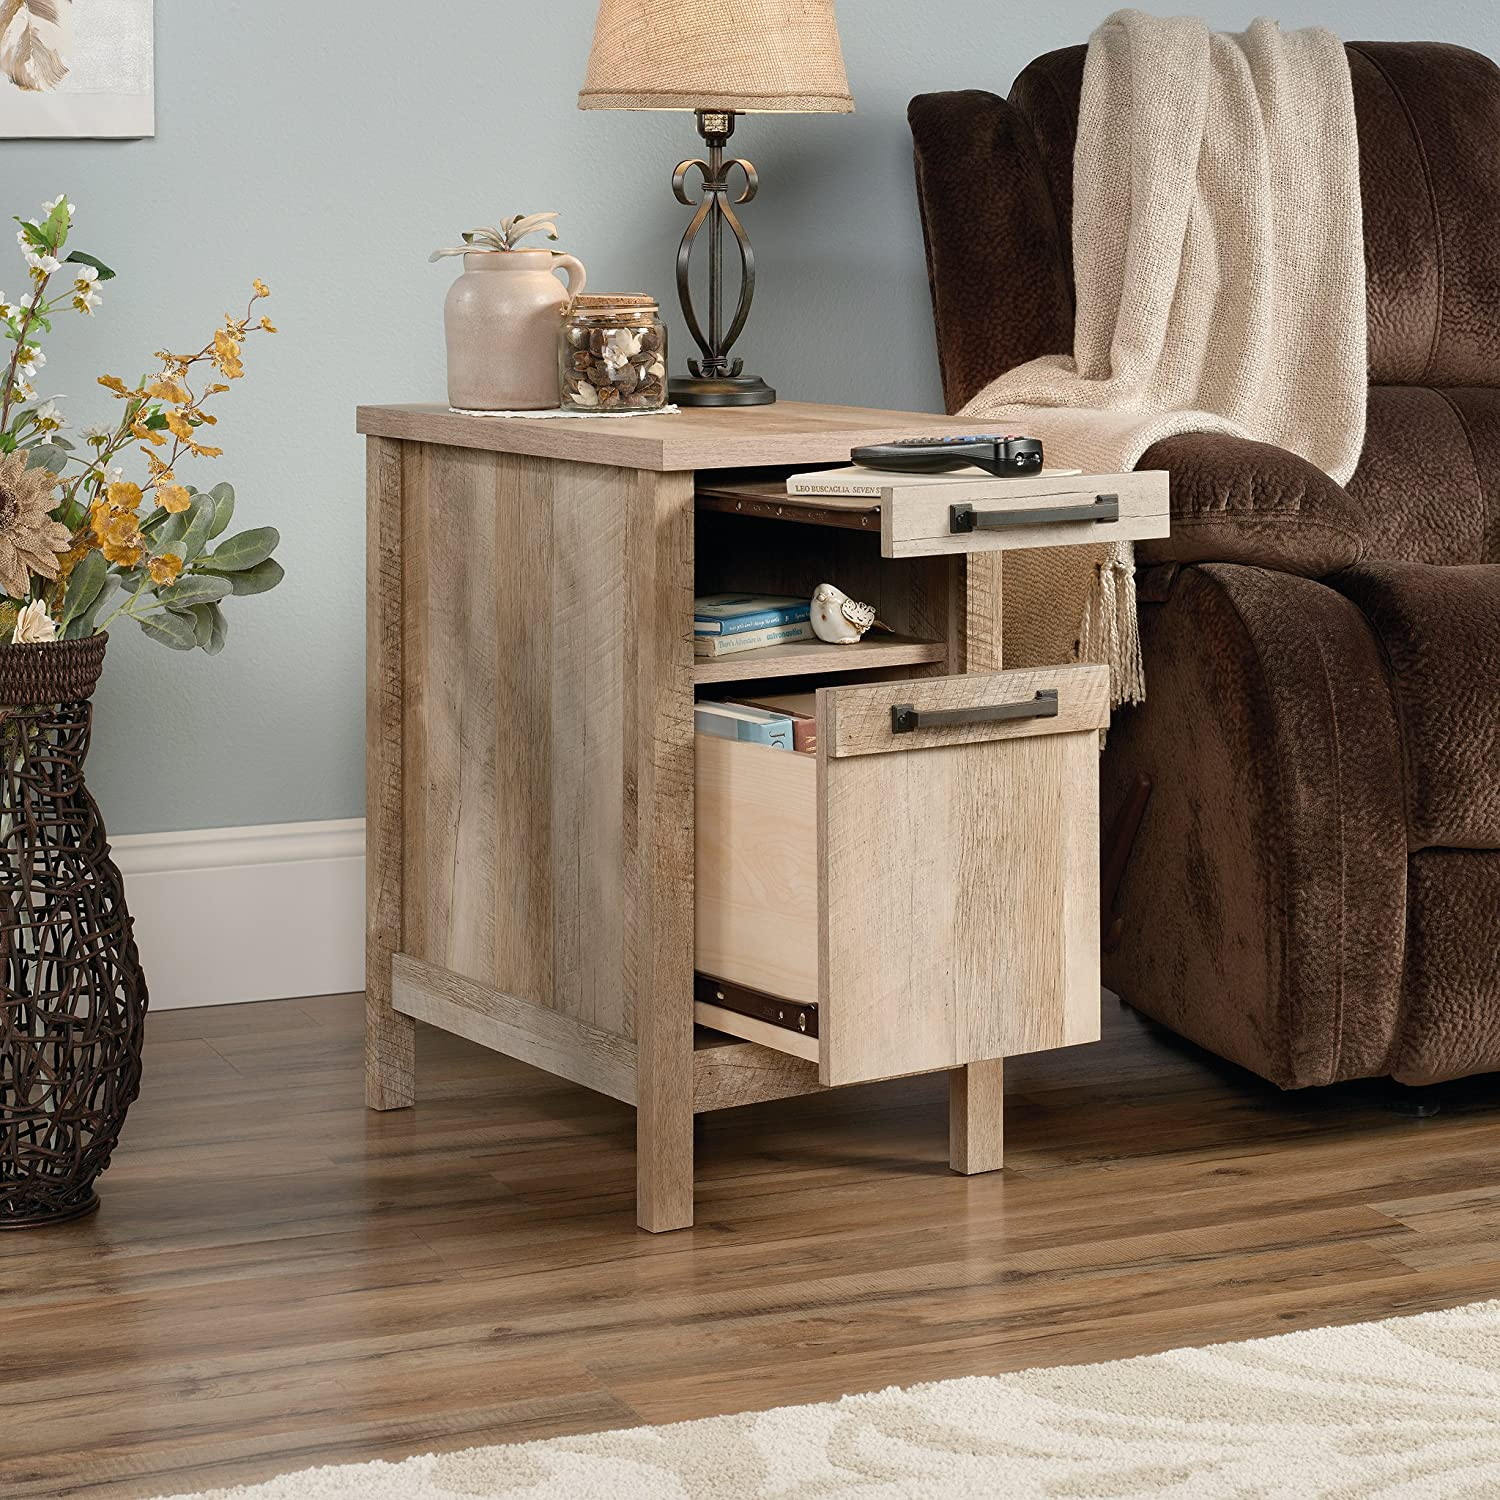 Sauder Cannery Bridge Side Table, Lintel Oak finish